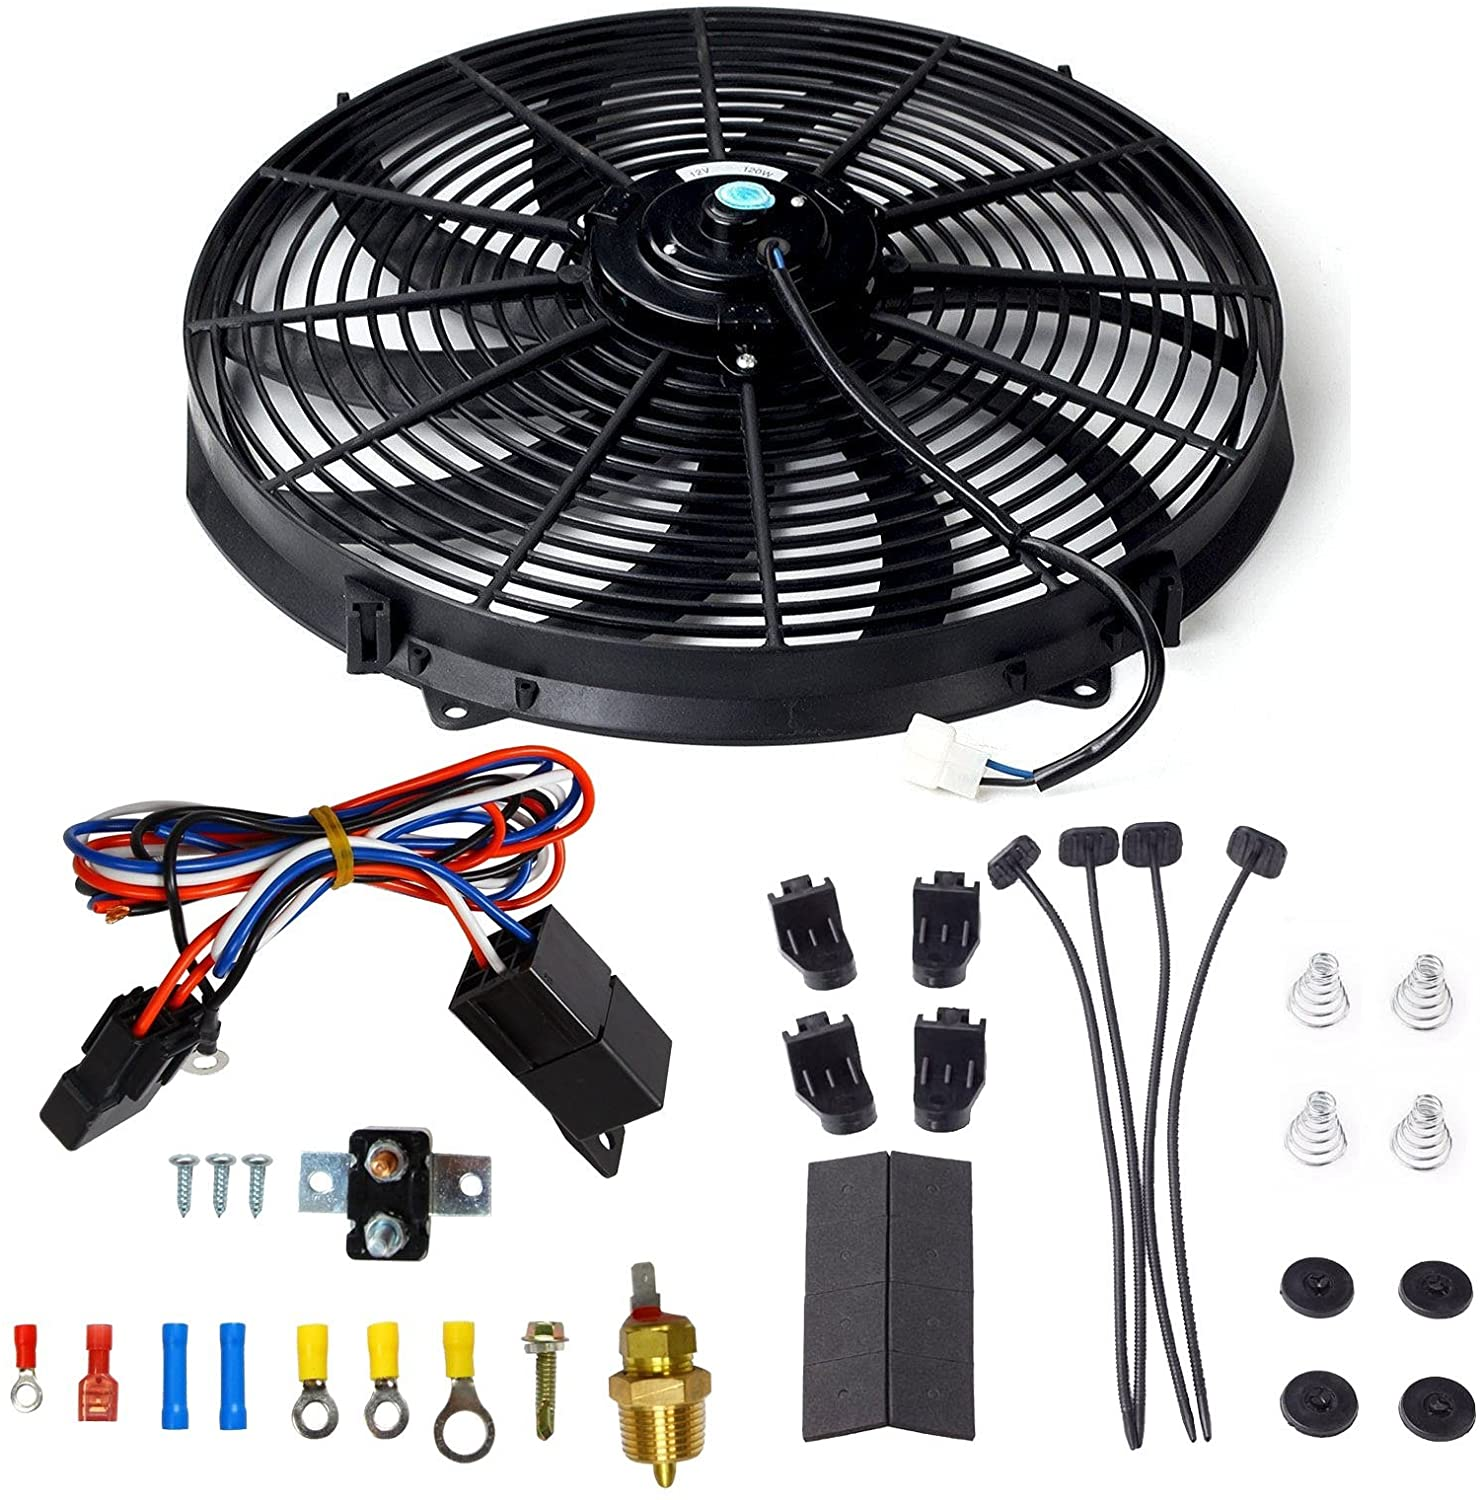 yjracing 16 Inch Electric Radiator Cooling Fan Mounting Kit & 175-185 Degree Thermostat Relay Switch Kit Black